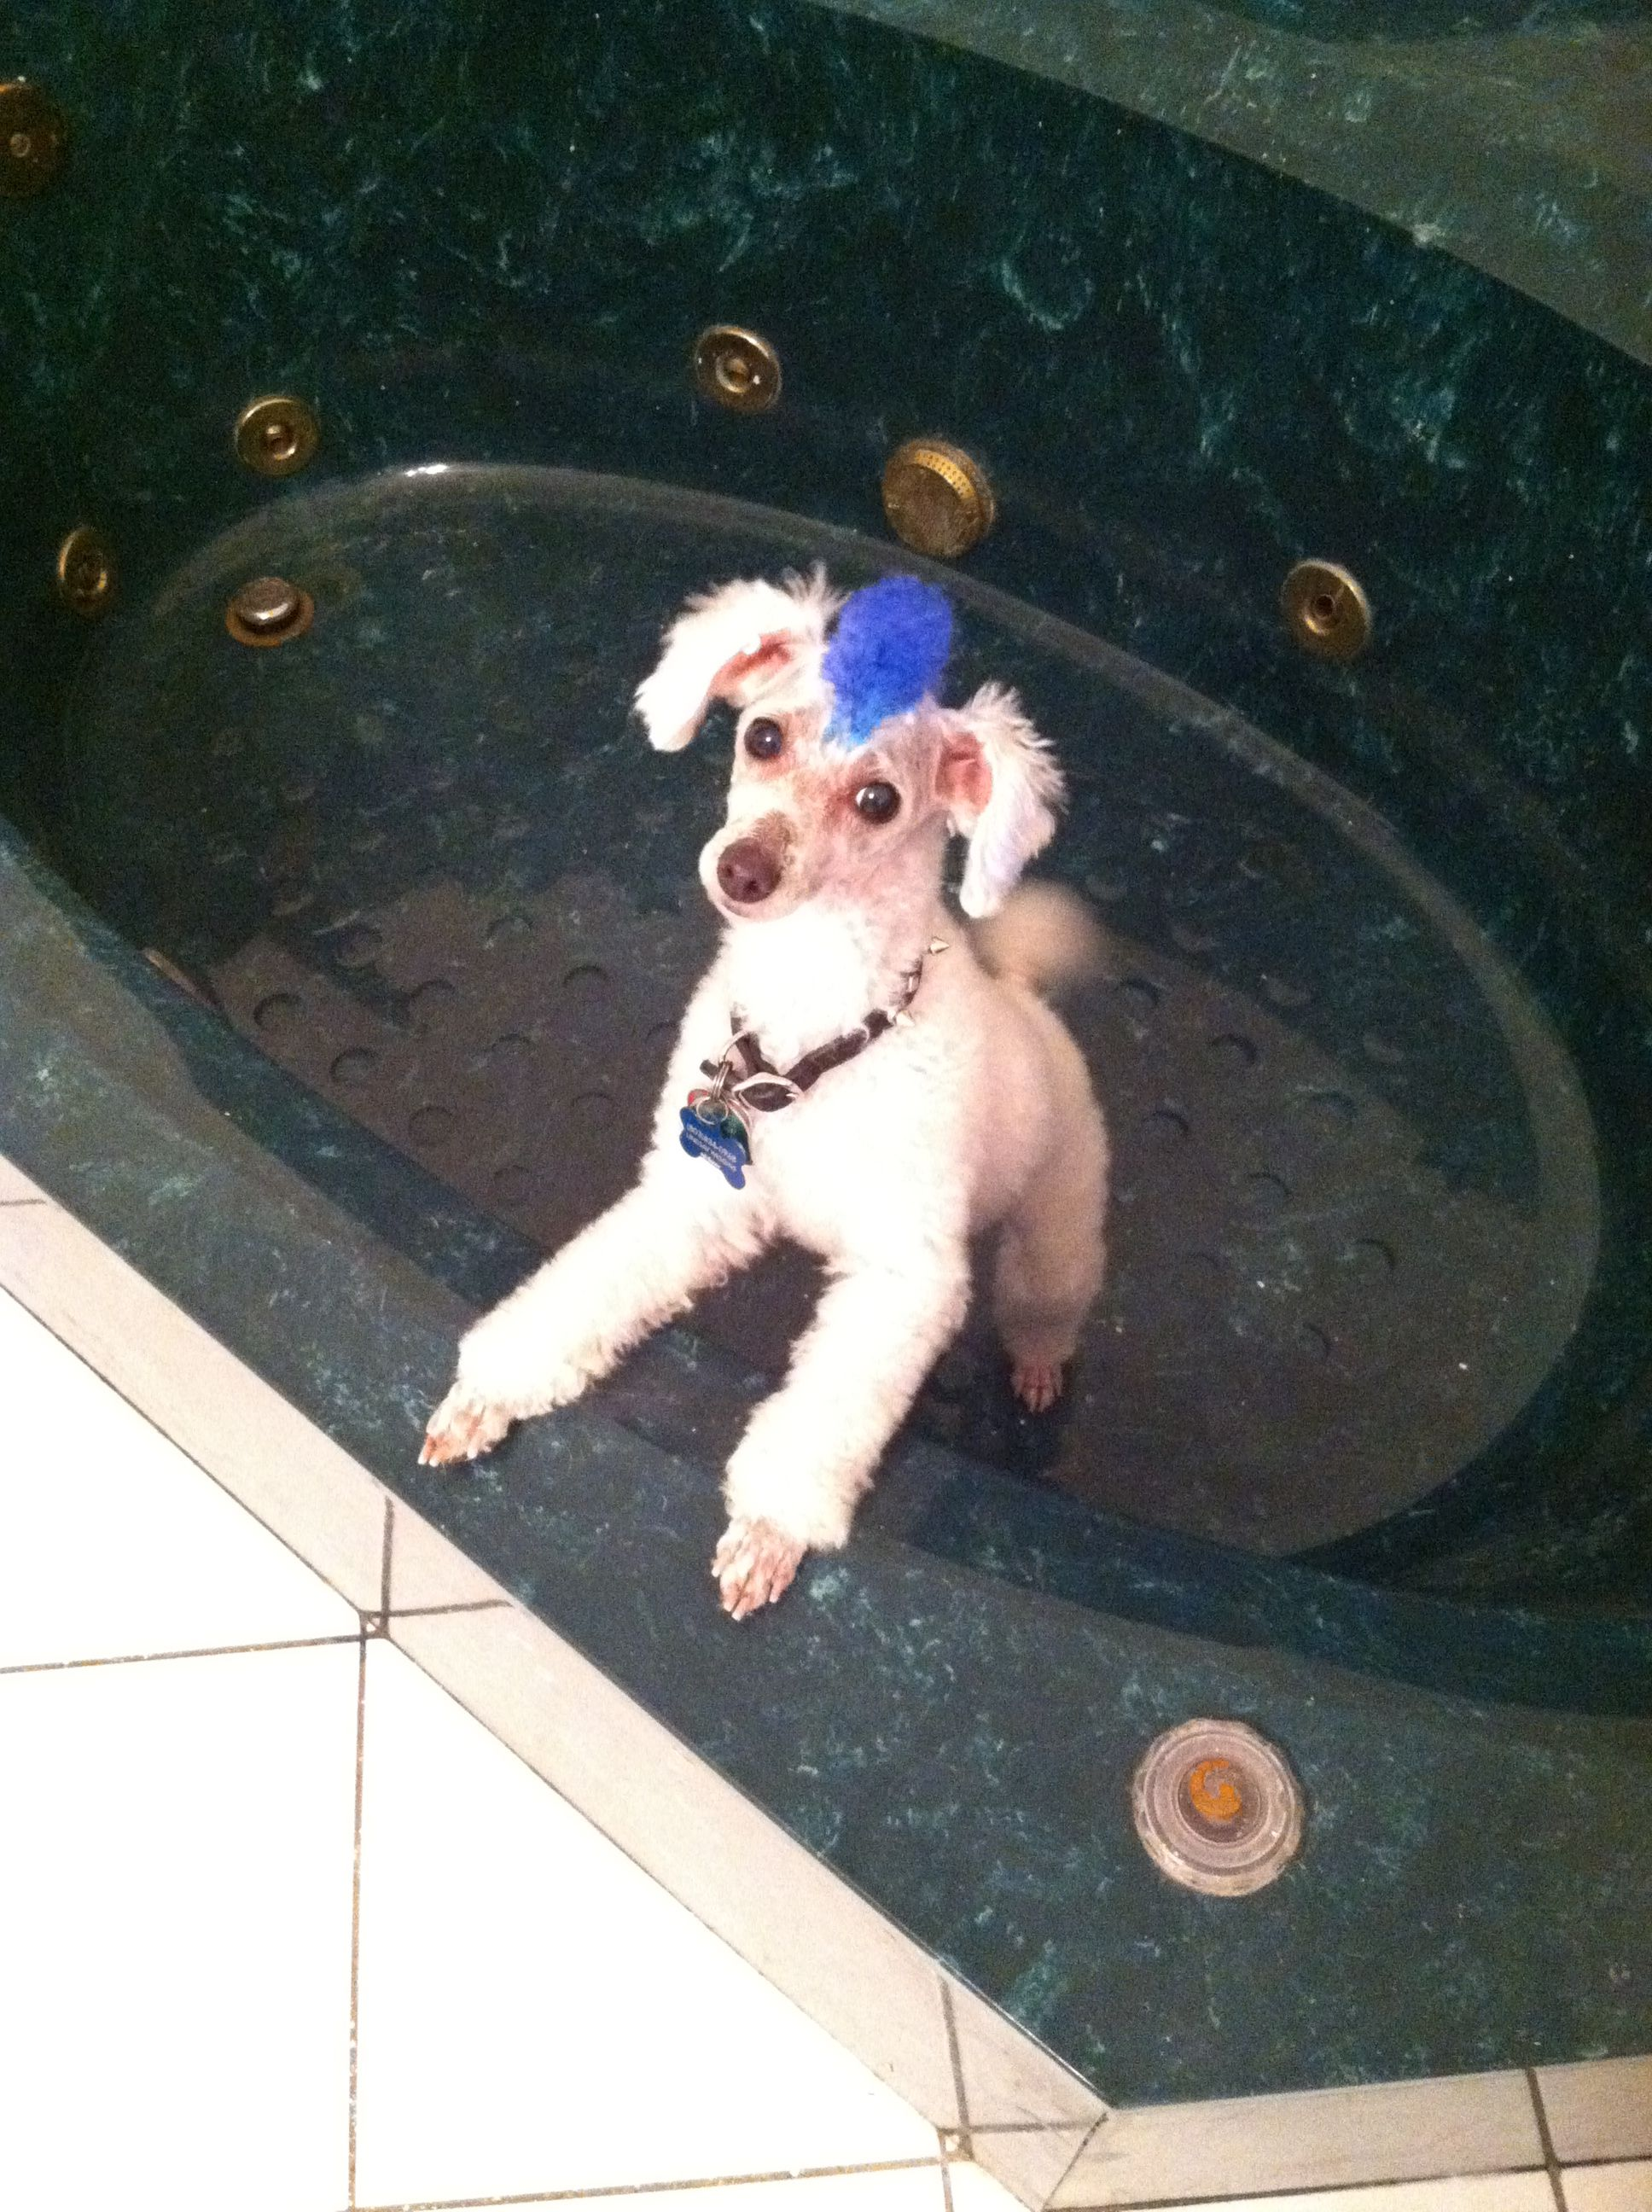 Blue Mohawk Smooch Dog In The The Bath Tub Dogs Animals Poodle